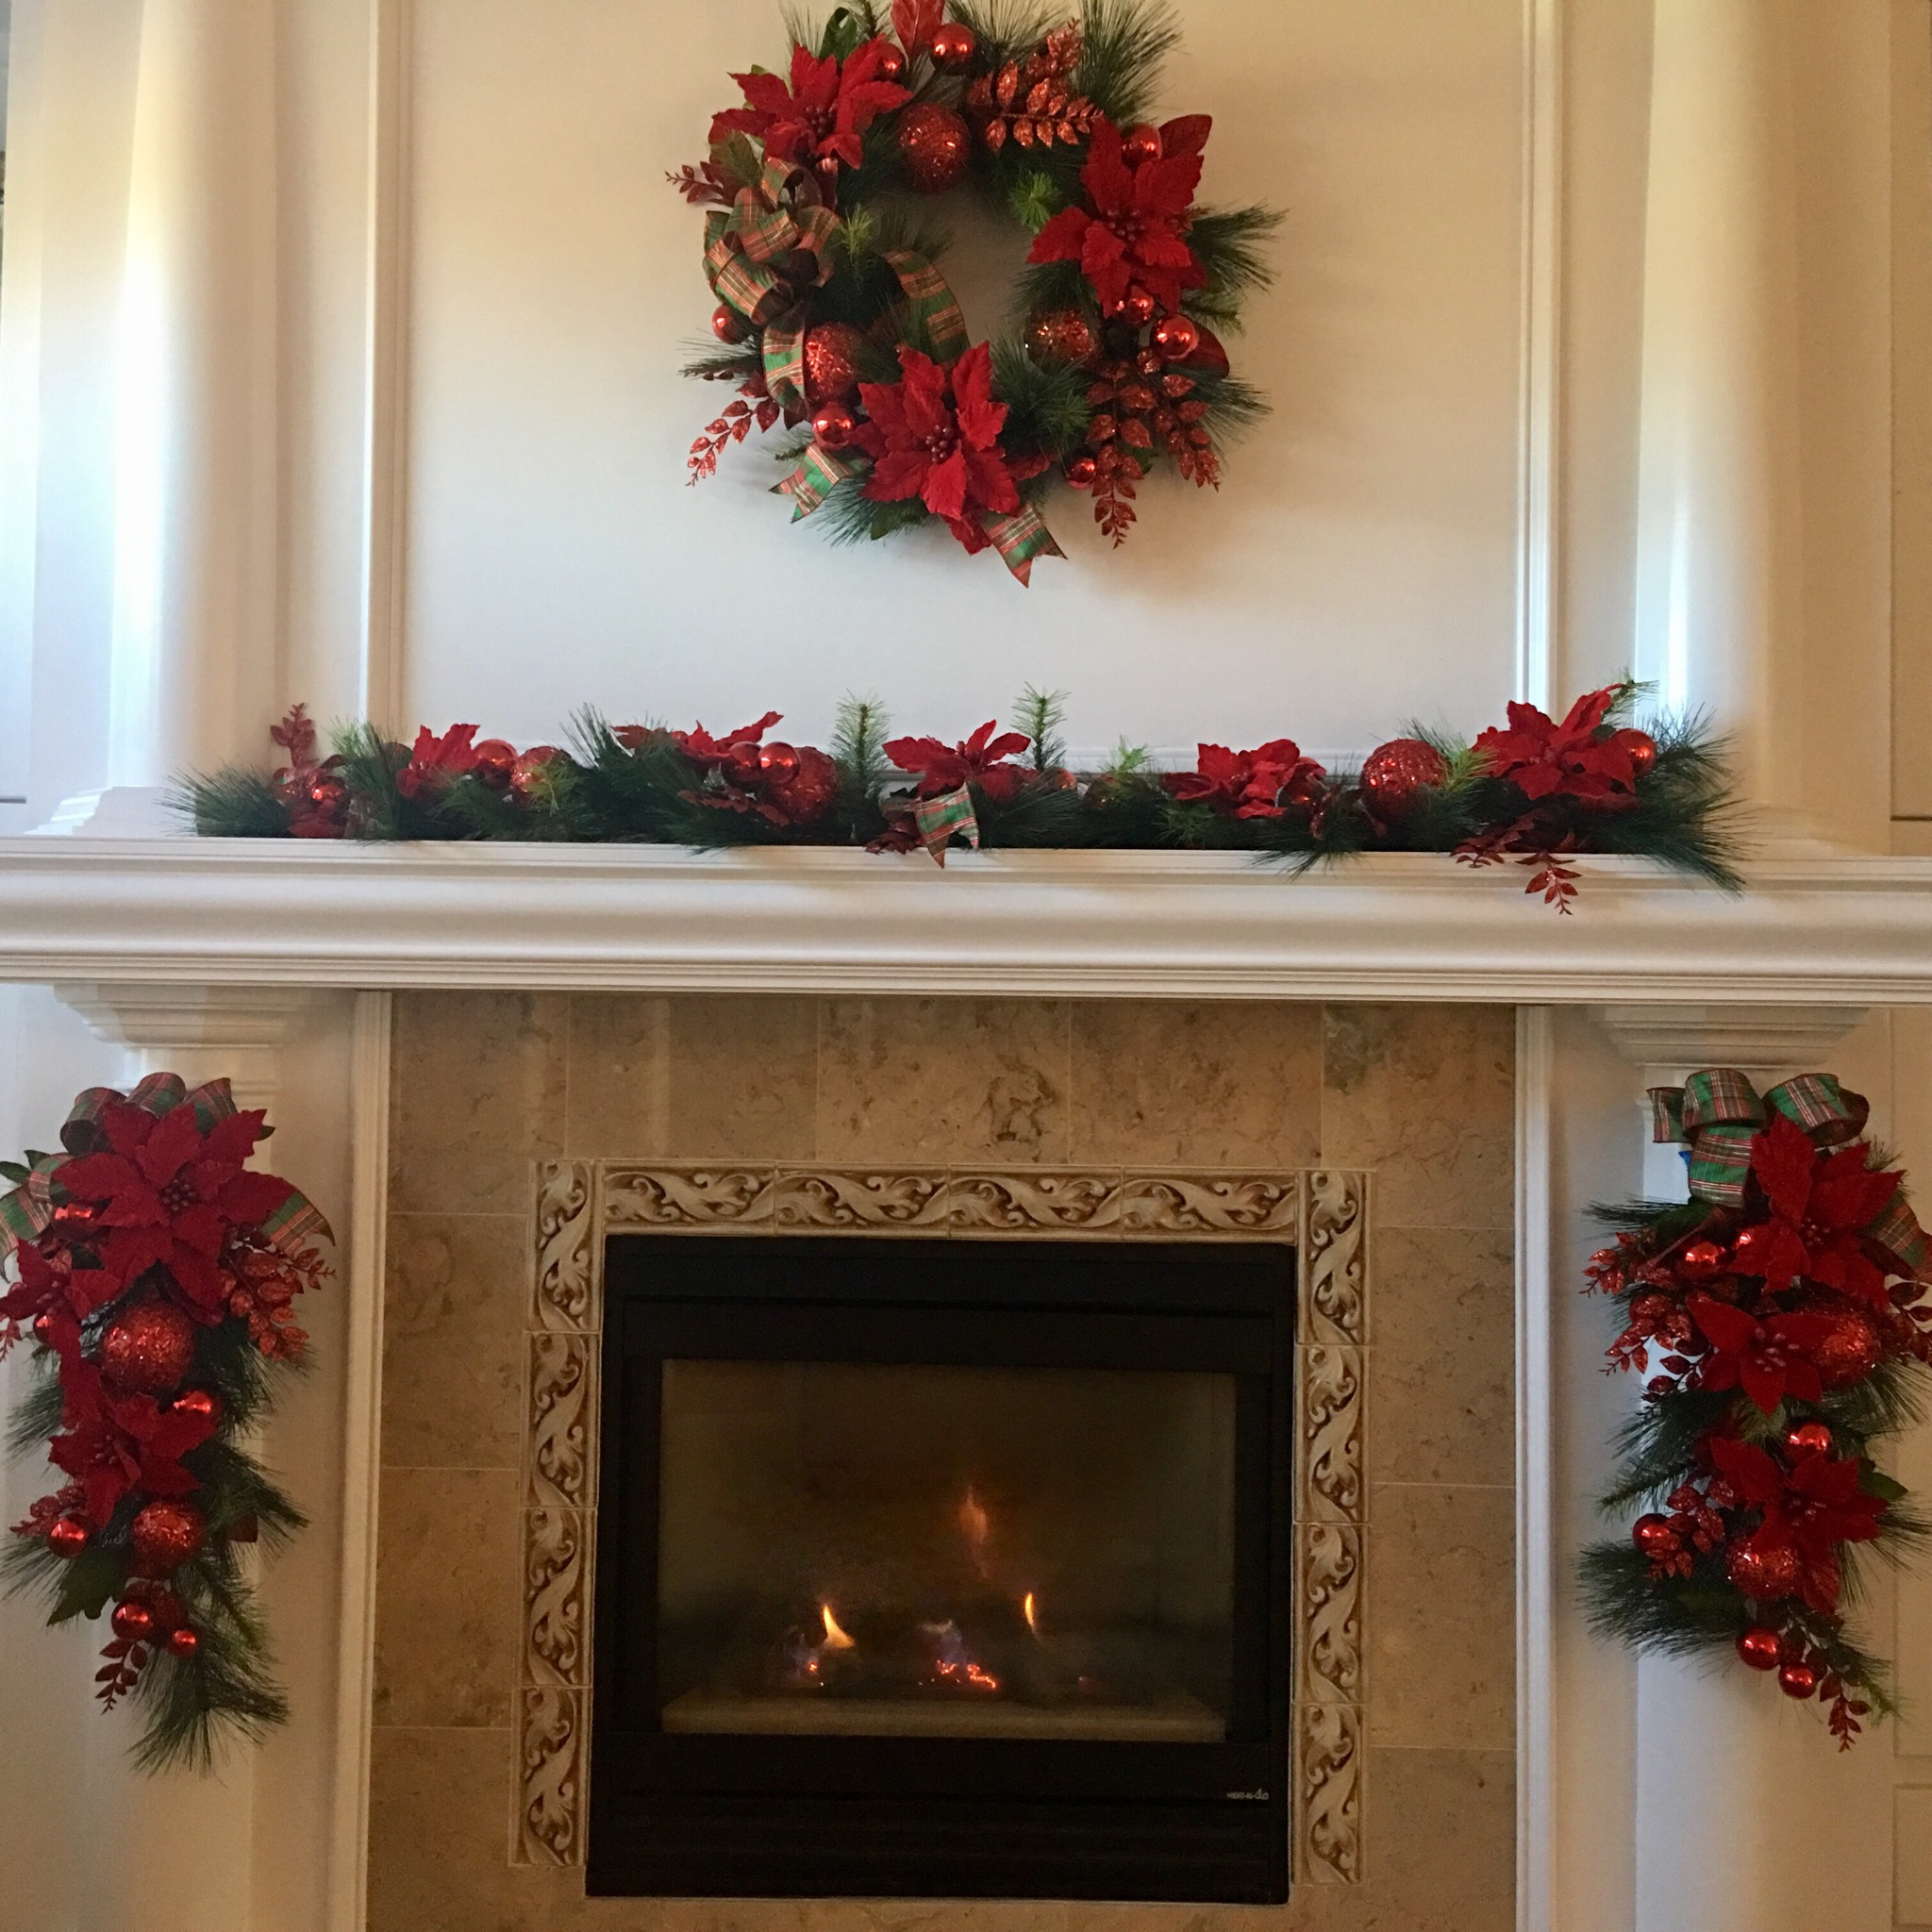 6 foot red poinsettia garland with plaid bows and glass balls